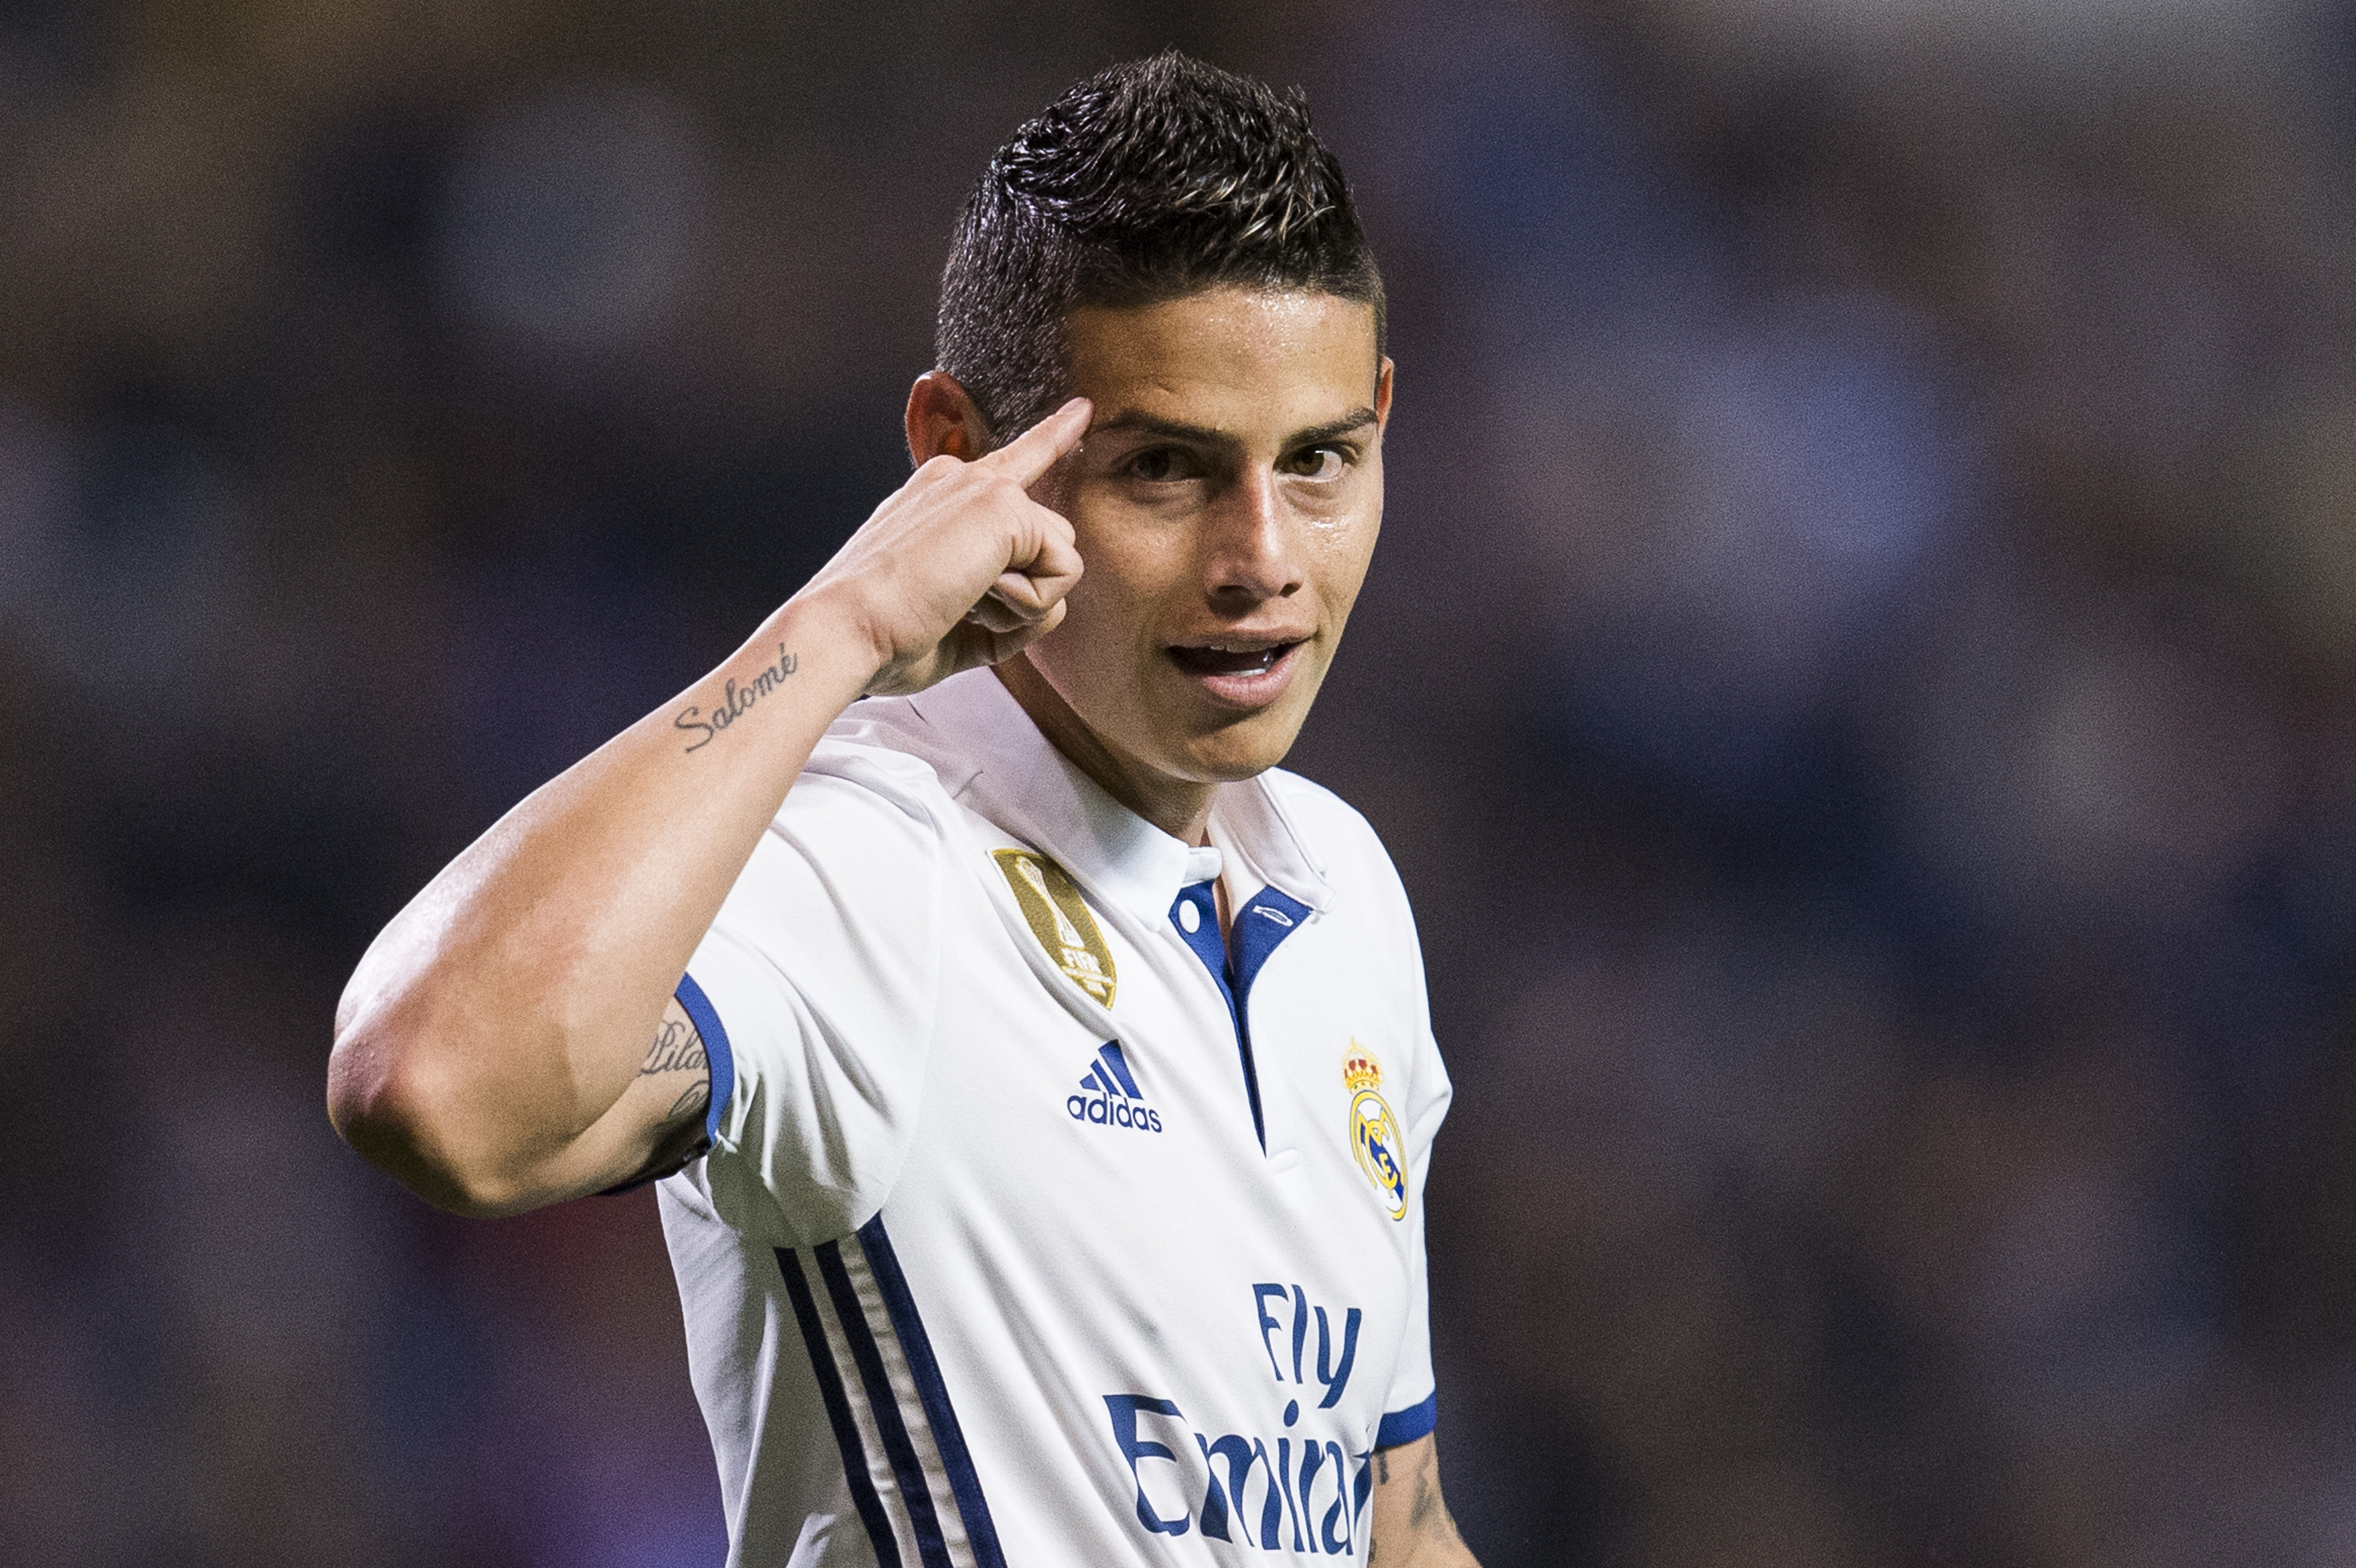 James Rodríguez and Diego Costa Among New Targets for Spanish Tax Authorities